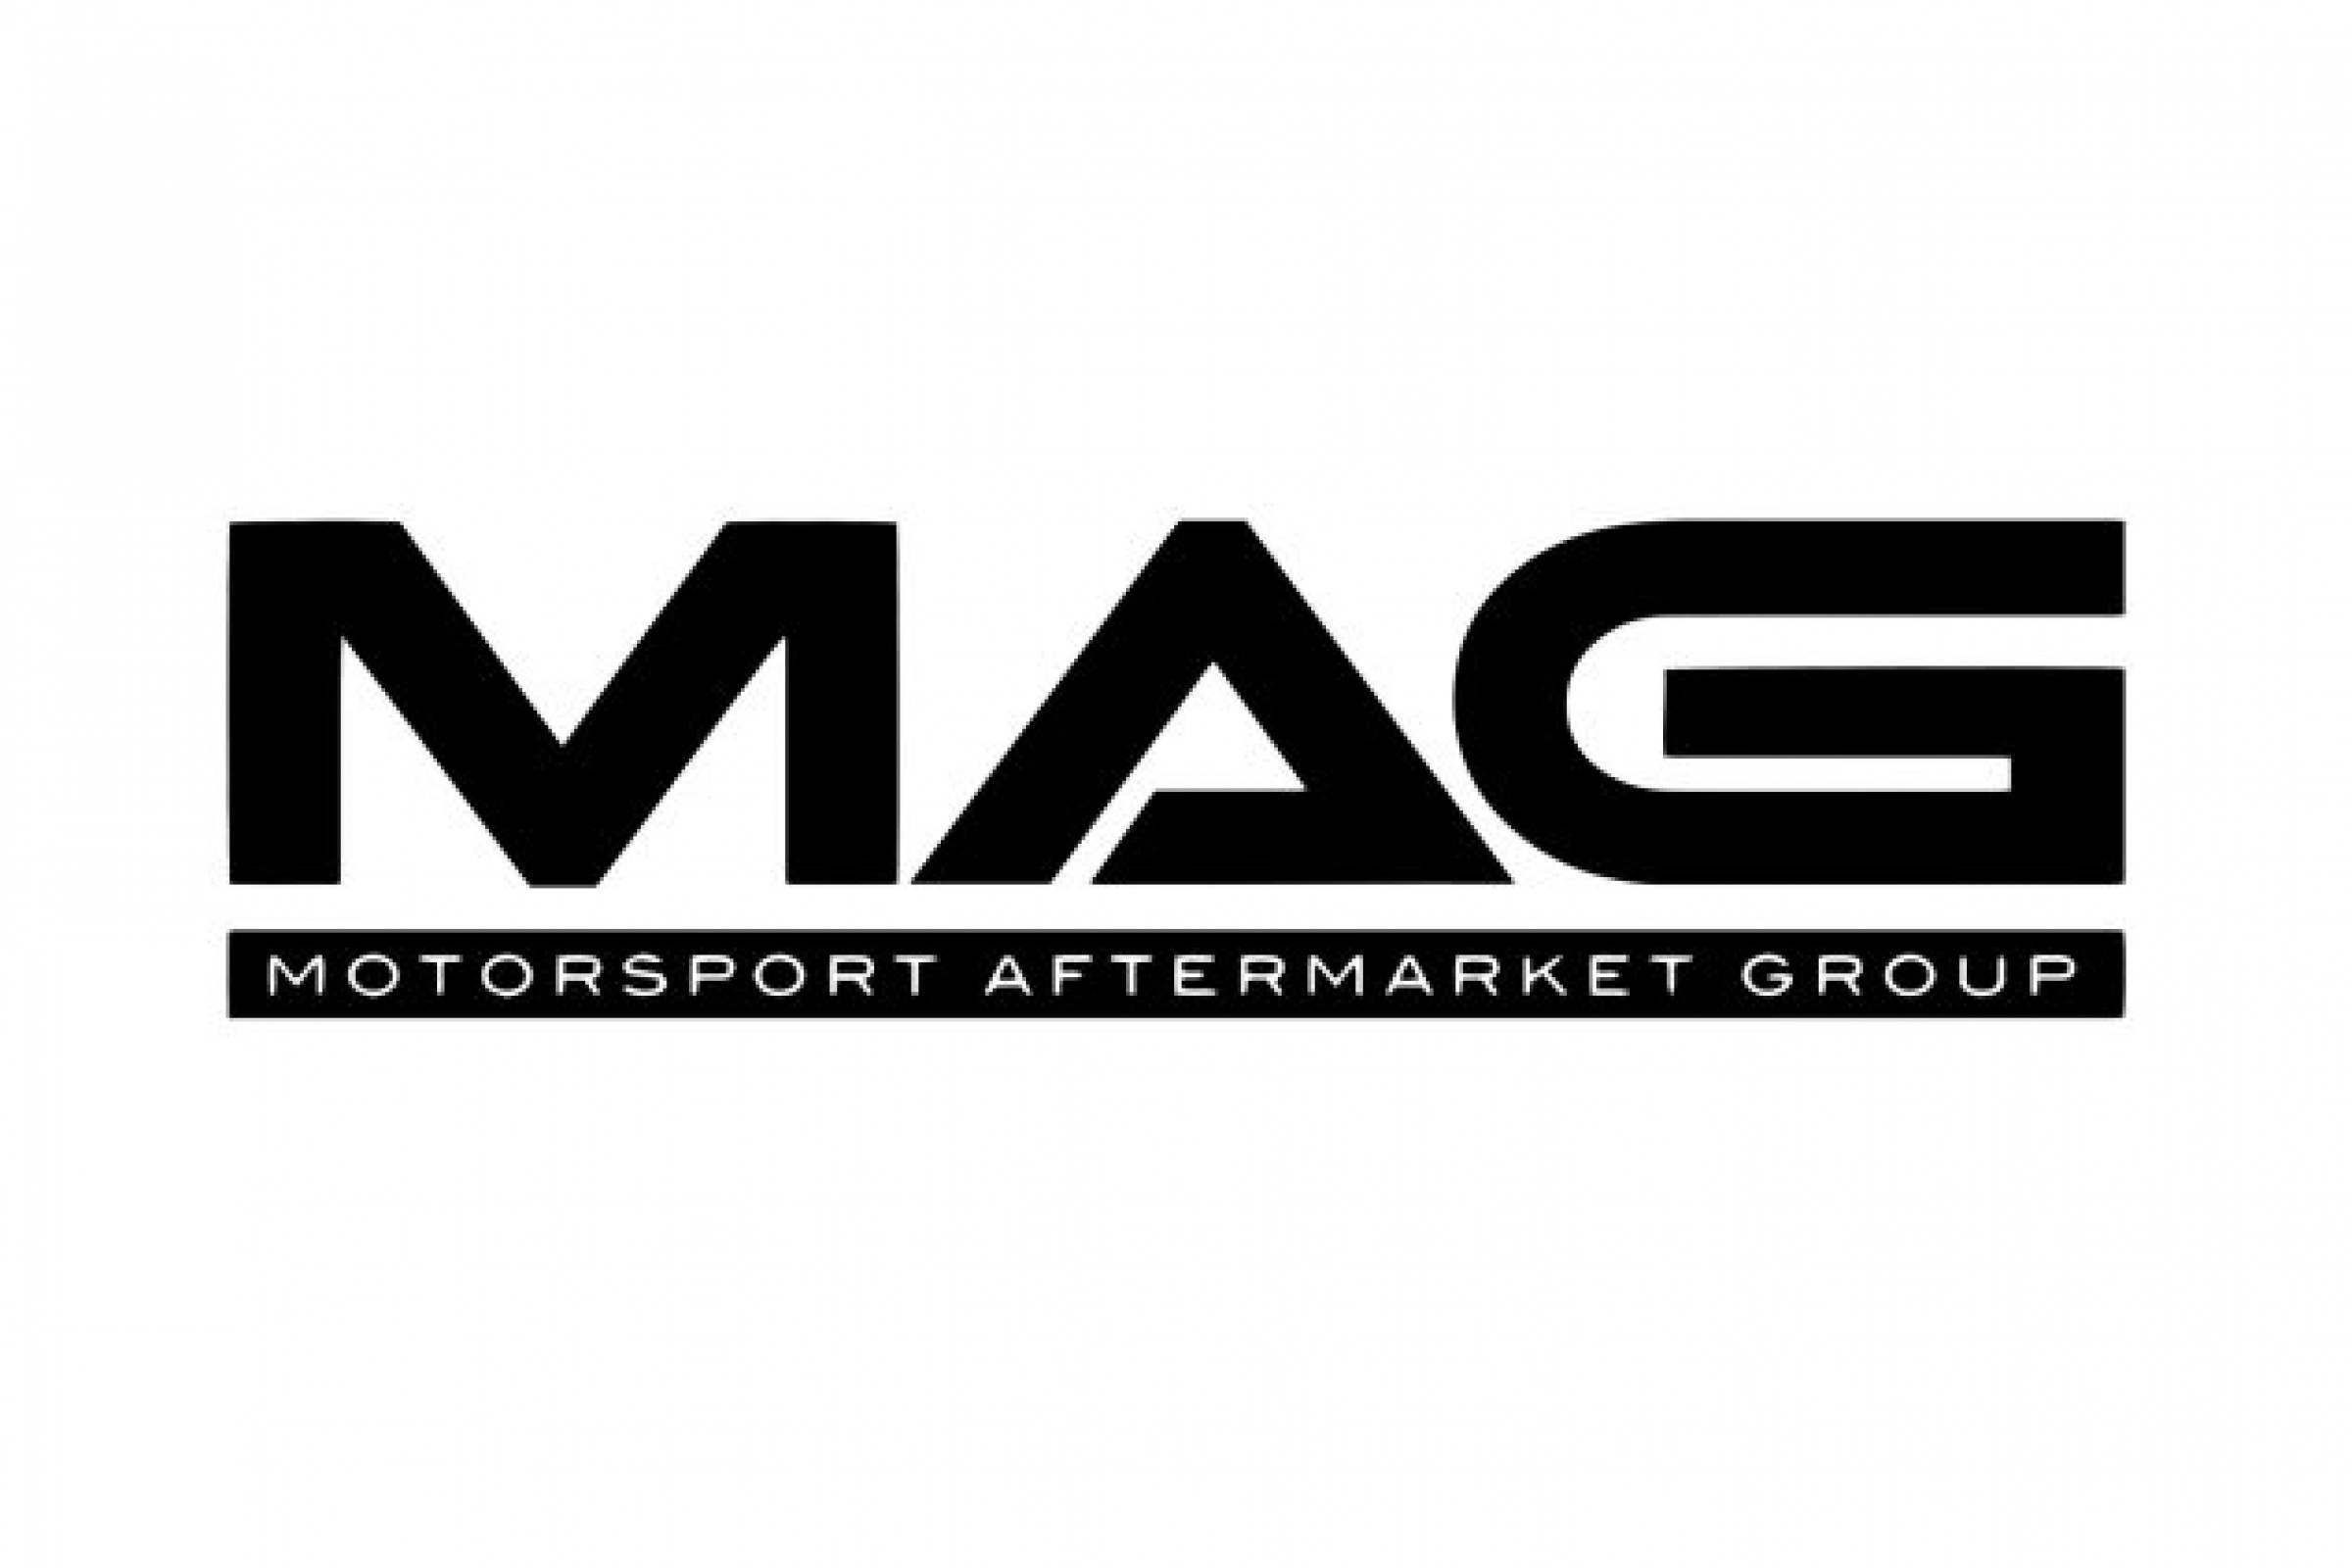 Group Mag Logo Vector (.AI) Free Download - SeekLogo